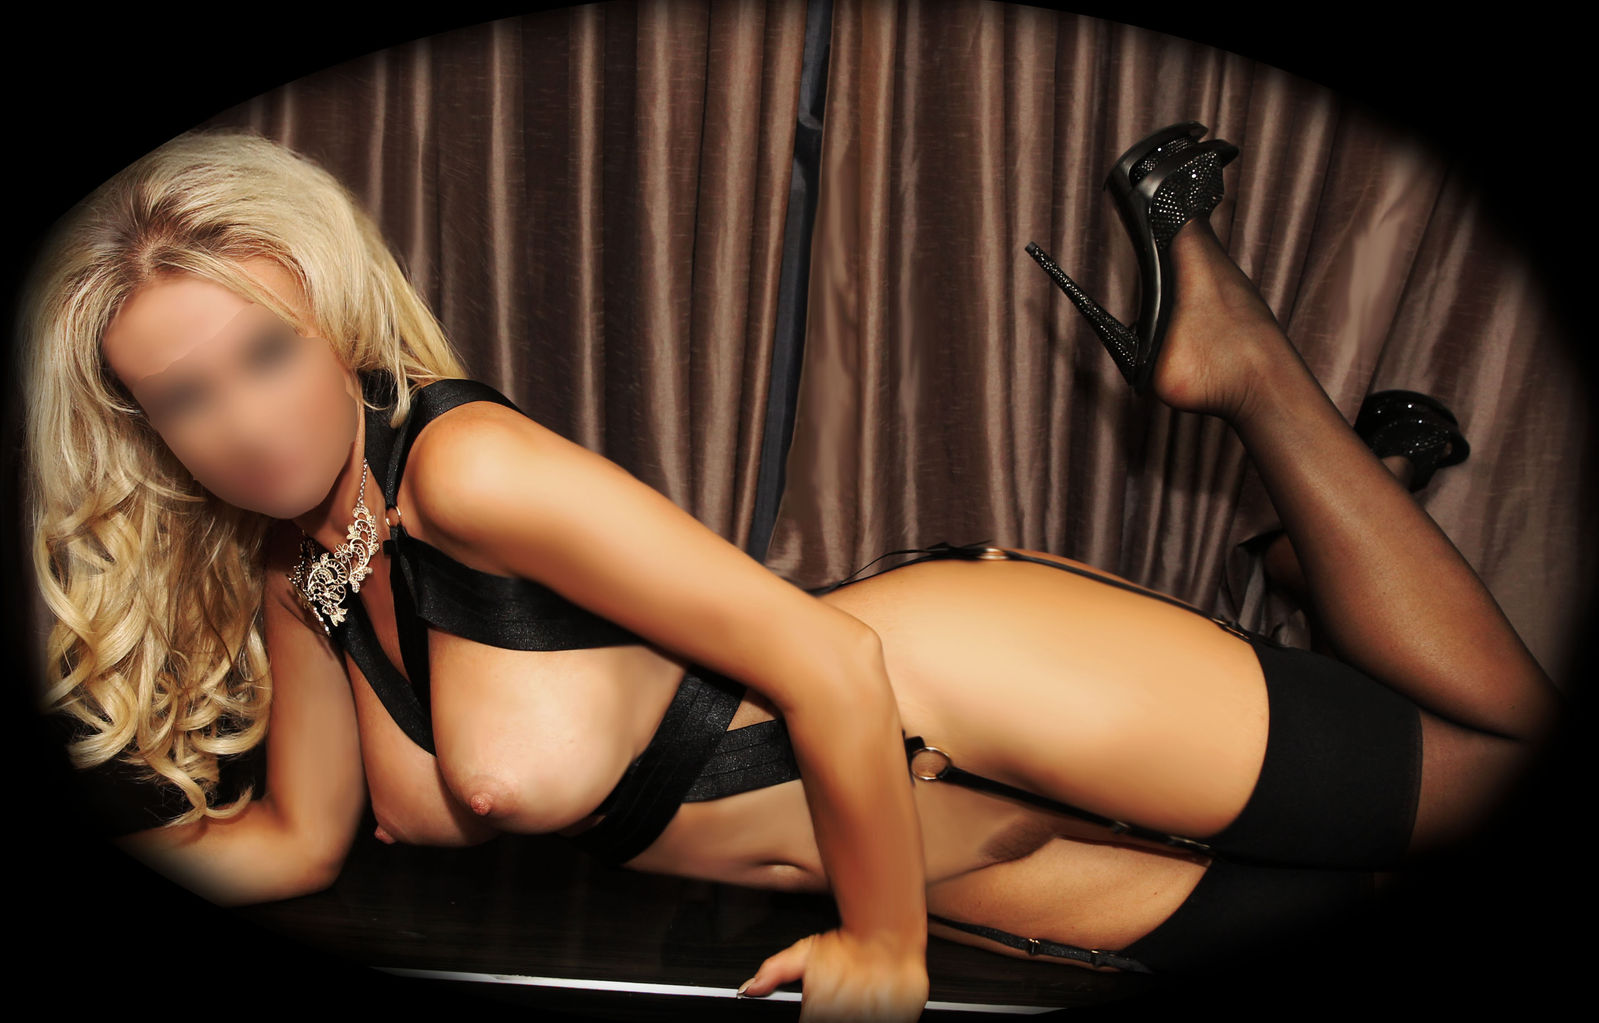 outcall escort private  escort Sydney